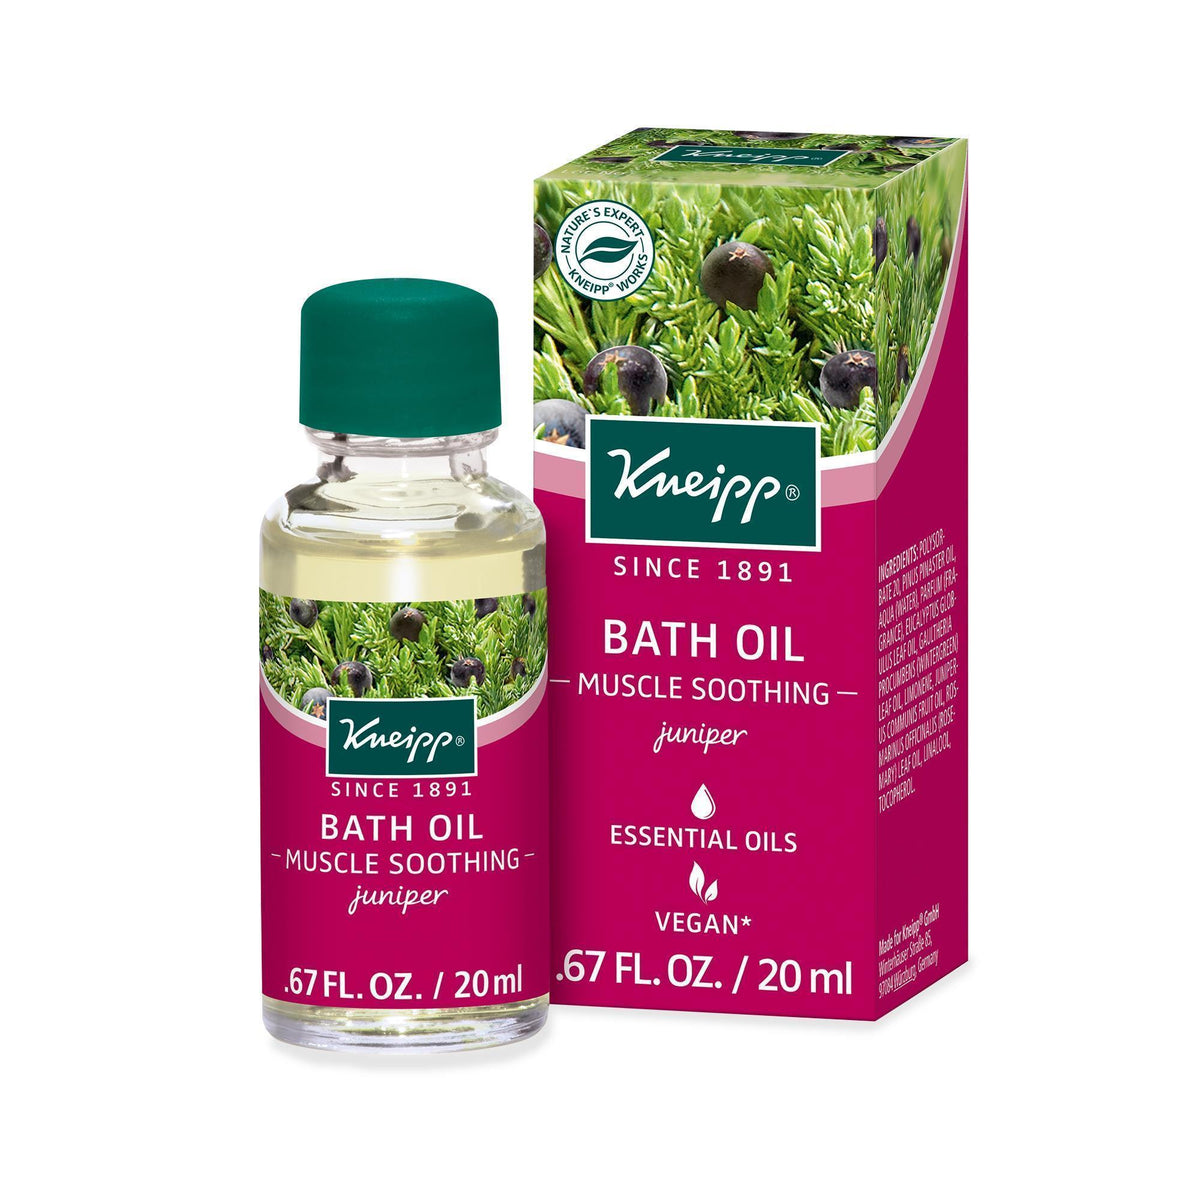 Kneipp Muscle Soothing Bath Oil